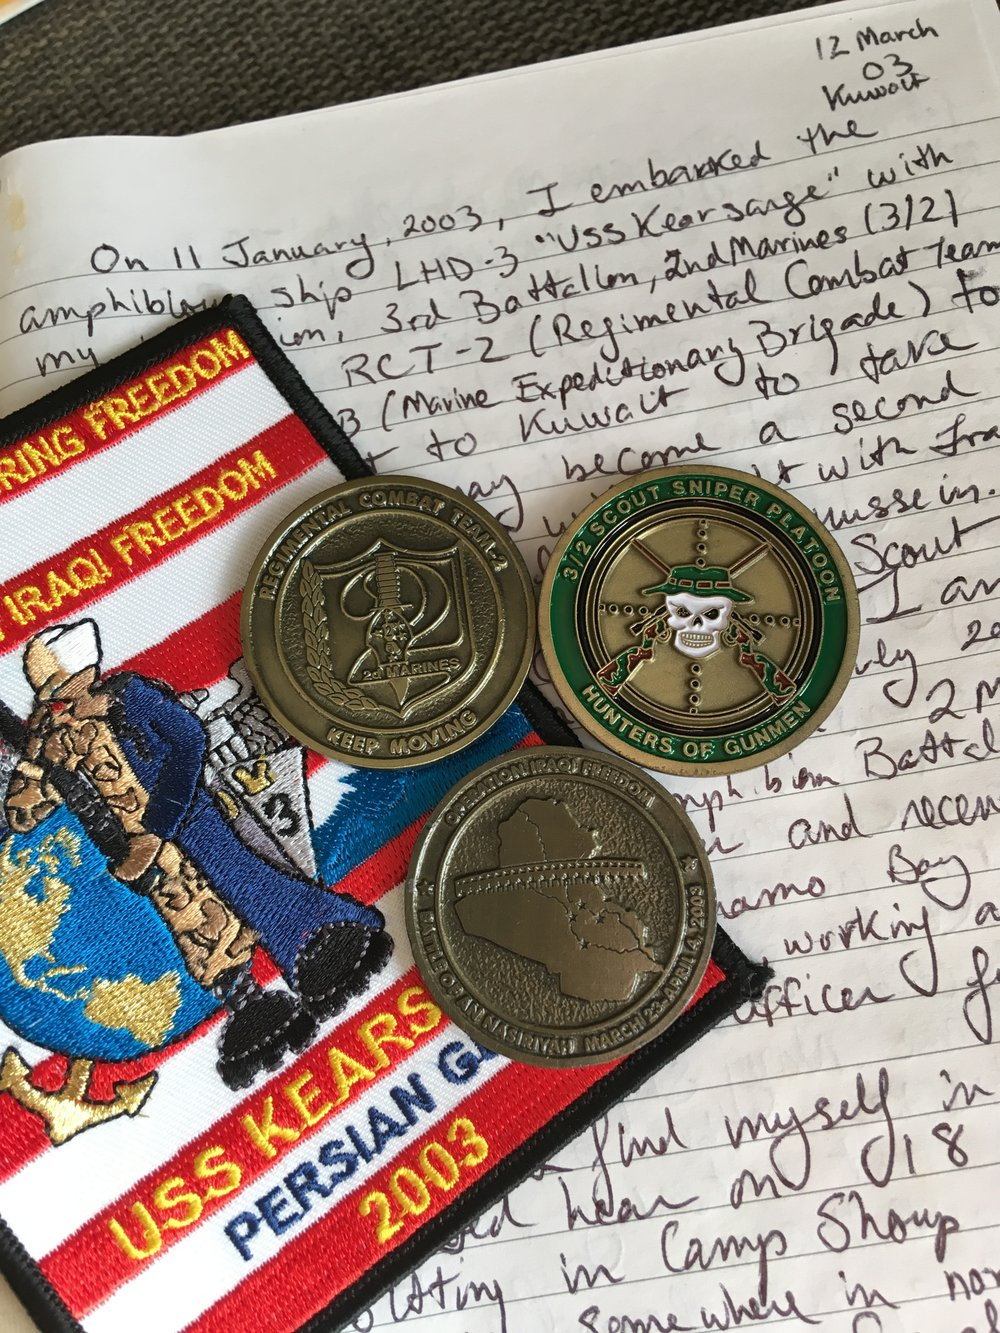 The front page entry of my solitary journal entry, along with some coins a patch made by the ship's company of USS Kearsarge (LHD-3) which brought us to and home from Iraq in 2003